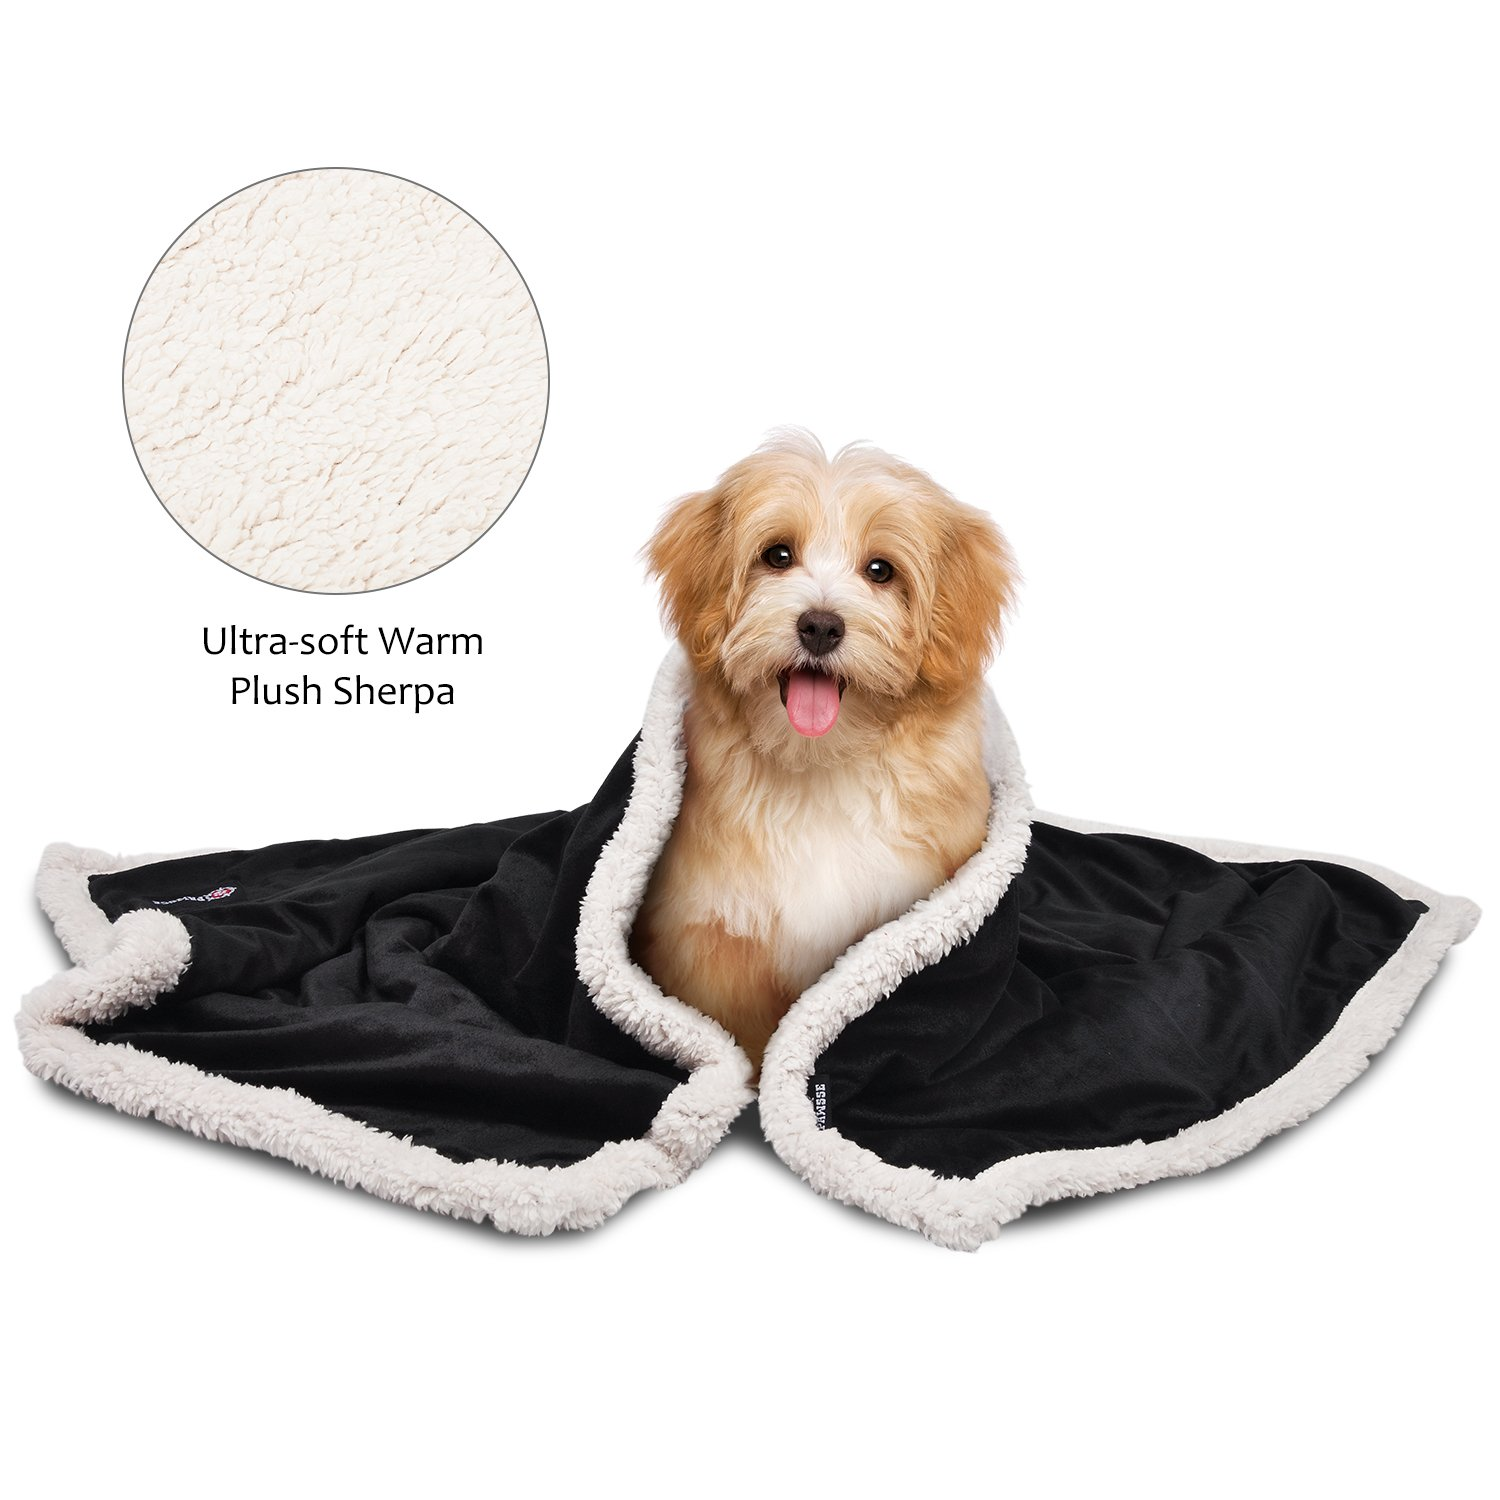 Pawsse Sherpa Puppy Blanket for Small Dogs Kitten, Warm Flannel Plush Pet Bed Blanket Reversible, 45''x30'' Black/Latte